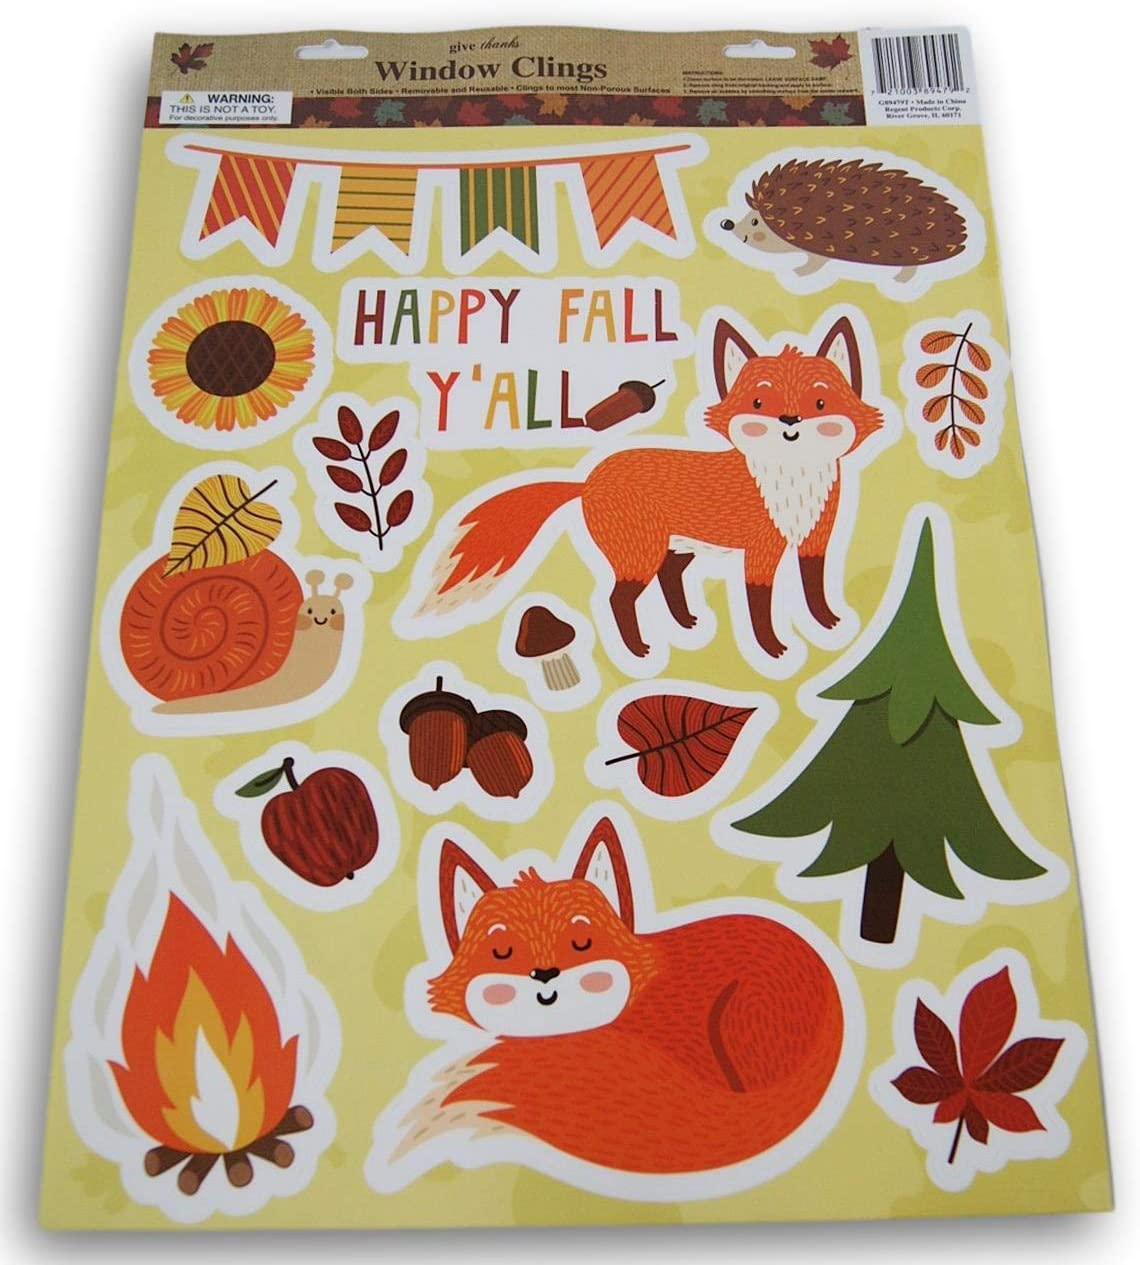 16 Piece Happy Fall Yall Foxes Autumn Fall Thanksgiving Themed Window Cling Set